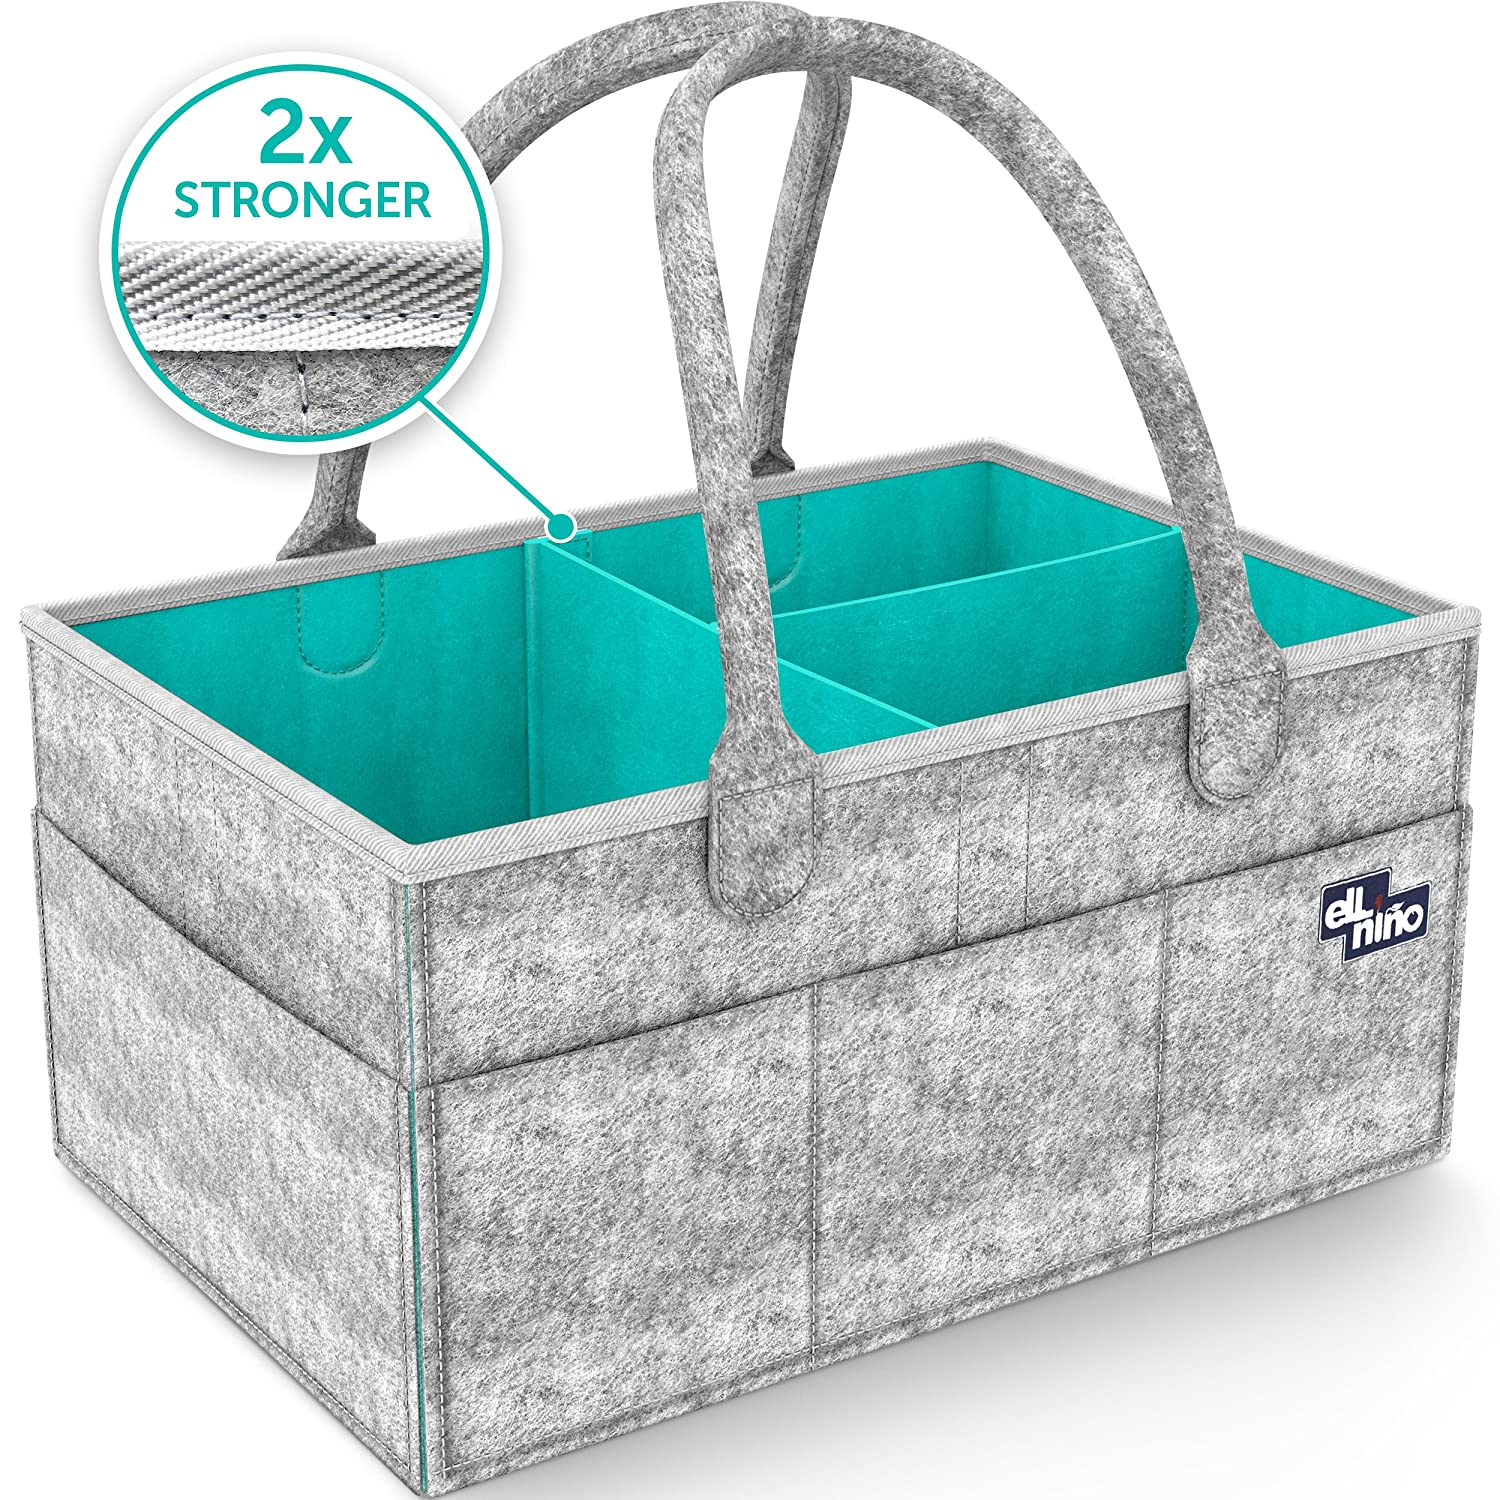 Baby Diaper Caddy Organizer - Portable Large diaper caddy tote - Car Travel Bag - Nursery diaper caddy Storage Bin - Gray Felt Basket Infant Girl Boy - Cute Gift for Kids - Newborn Registry Must Have Ell Nino